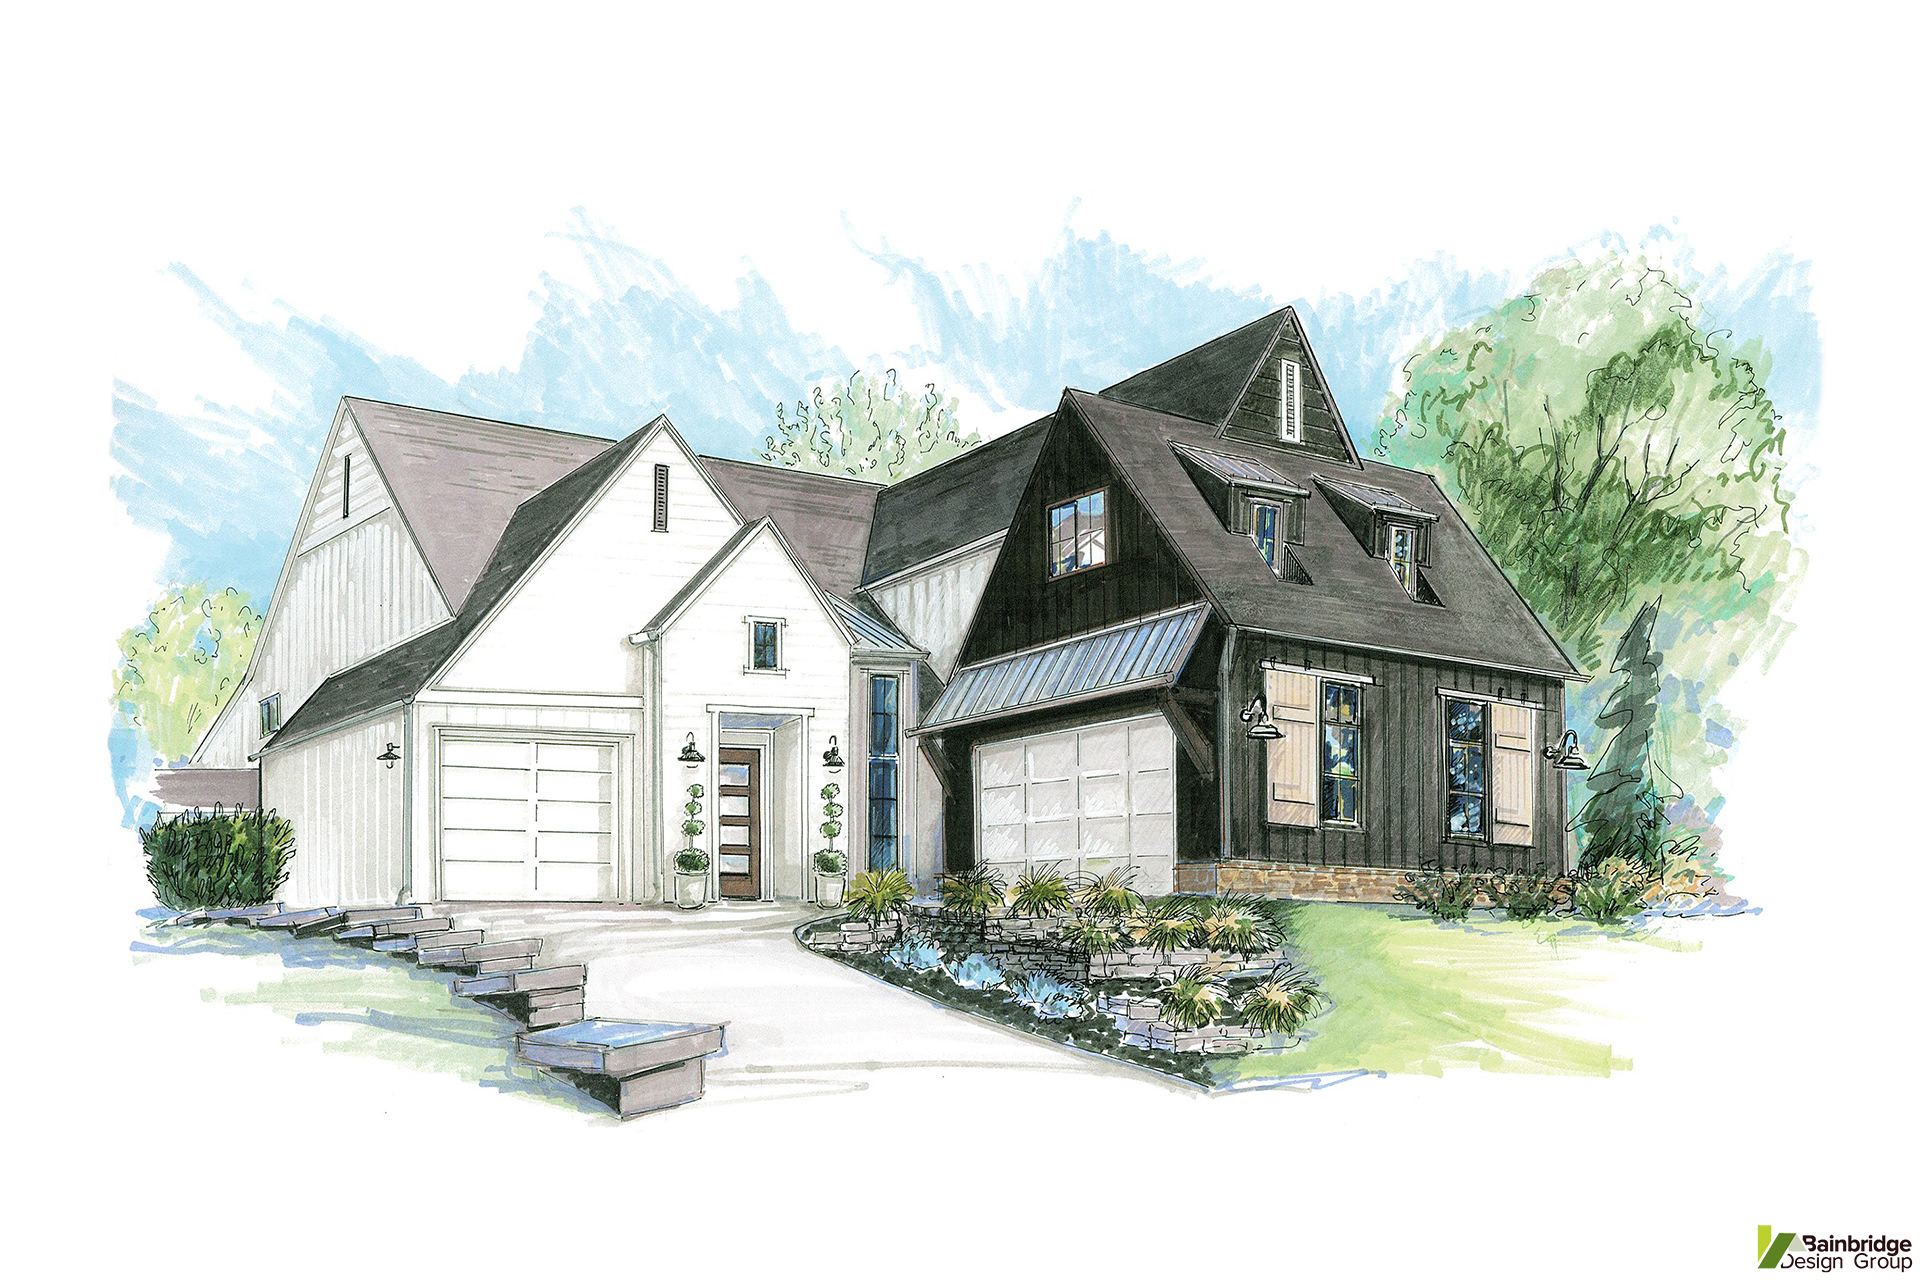 Modern farmhouse designs bainbridge design group for Farmhouse plans